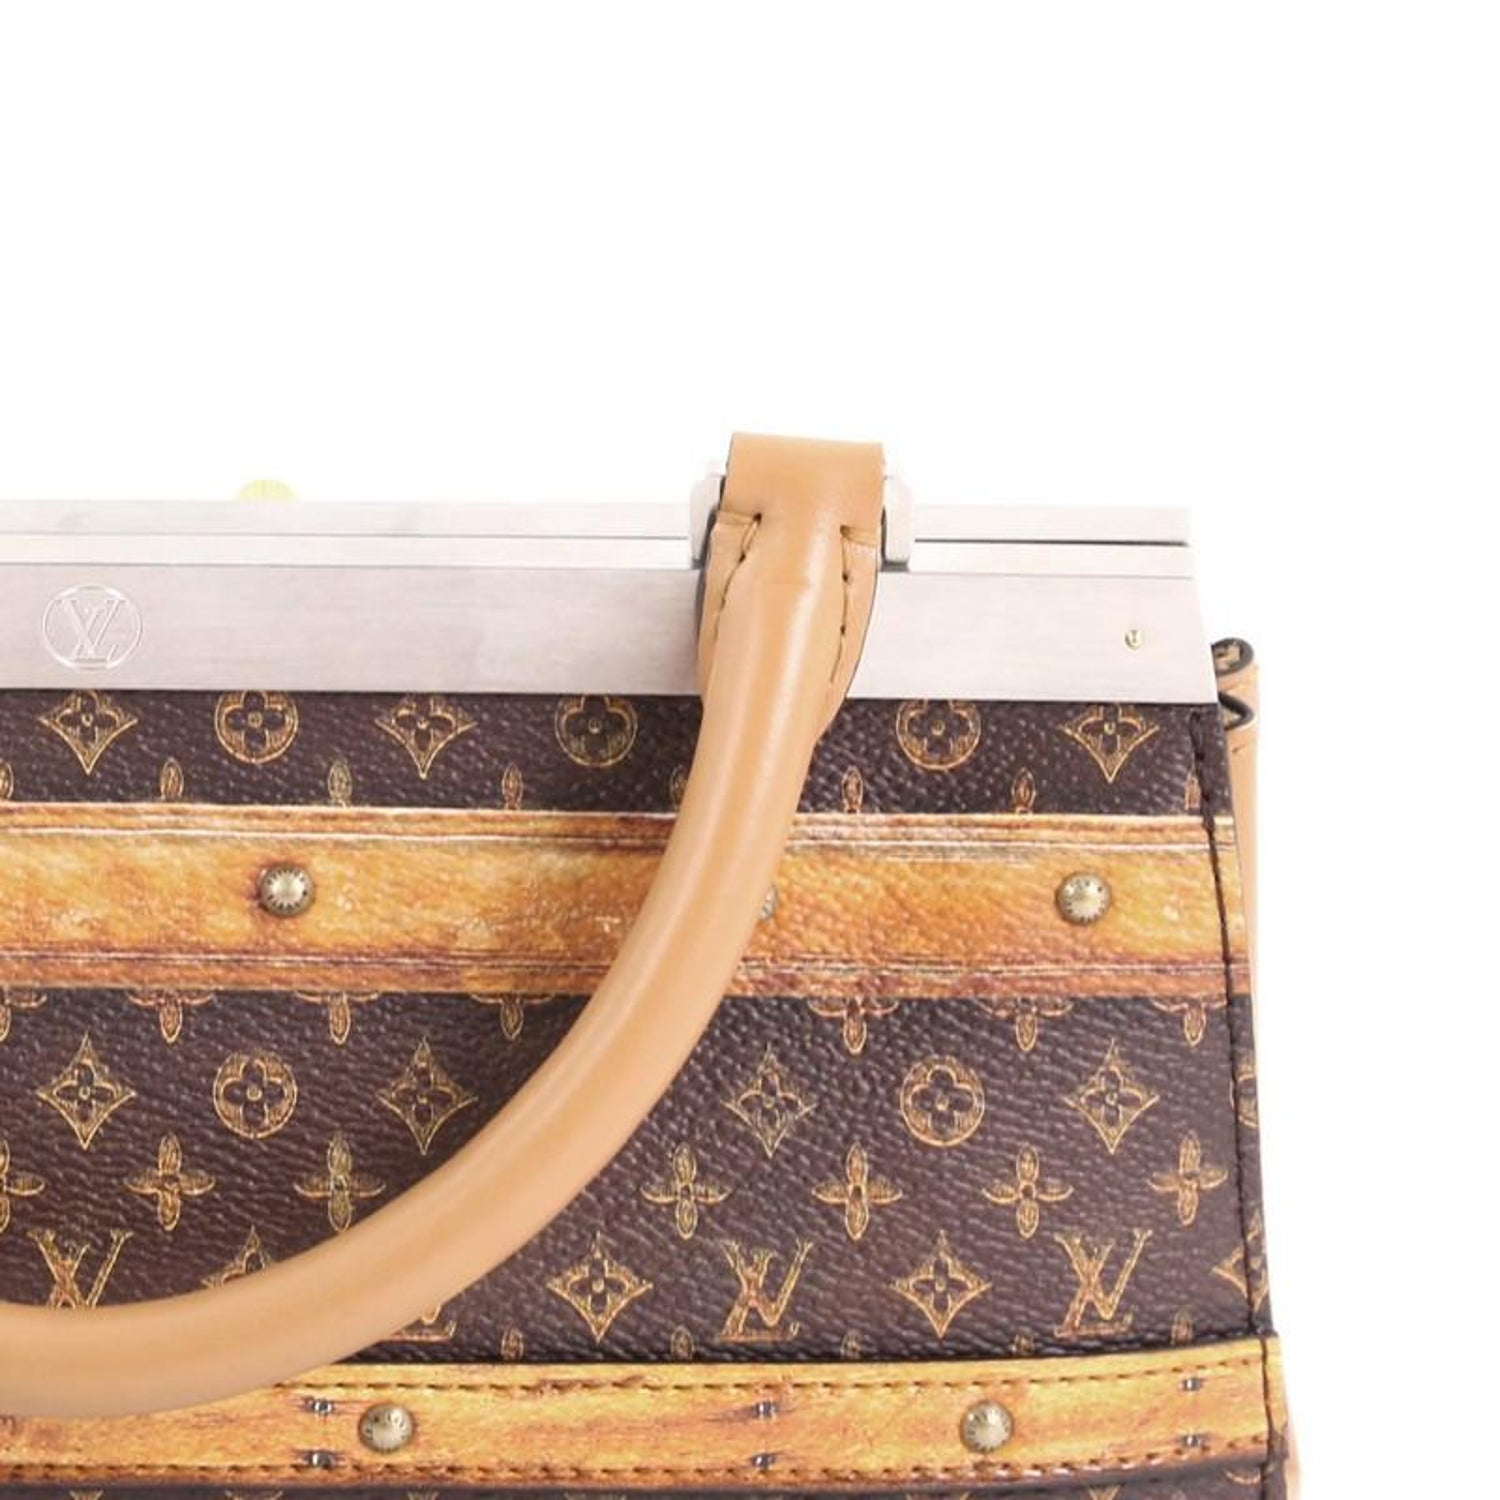 Louis Vuitton Crown Frame Tote Limited Edition Time Trunk Monogram Canvas  at 1stdibs e7c086fede937